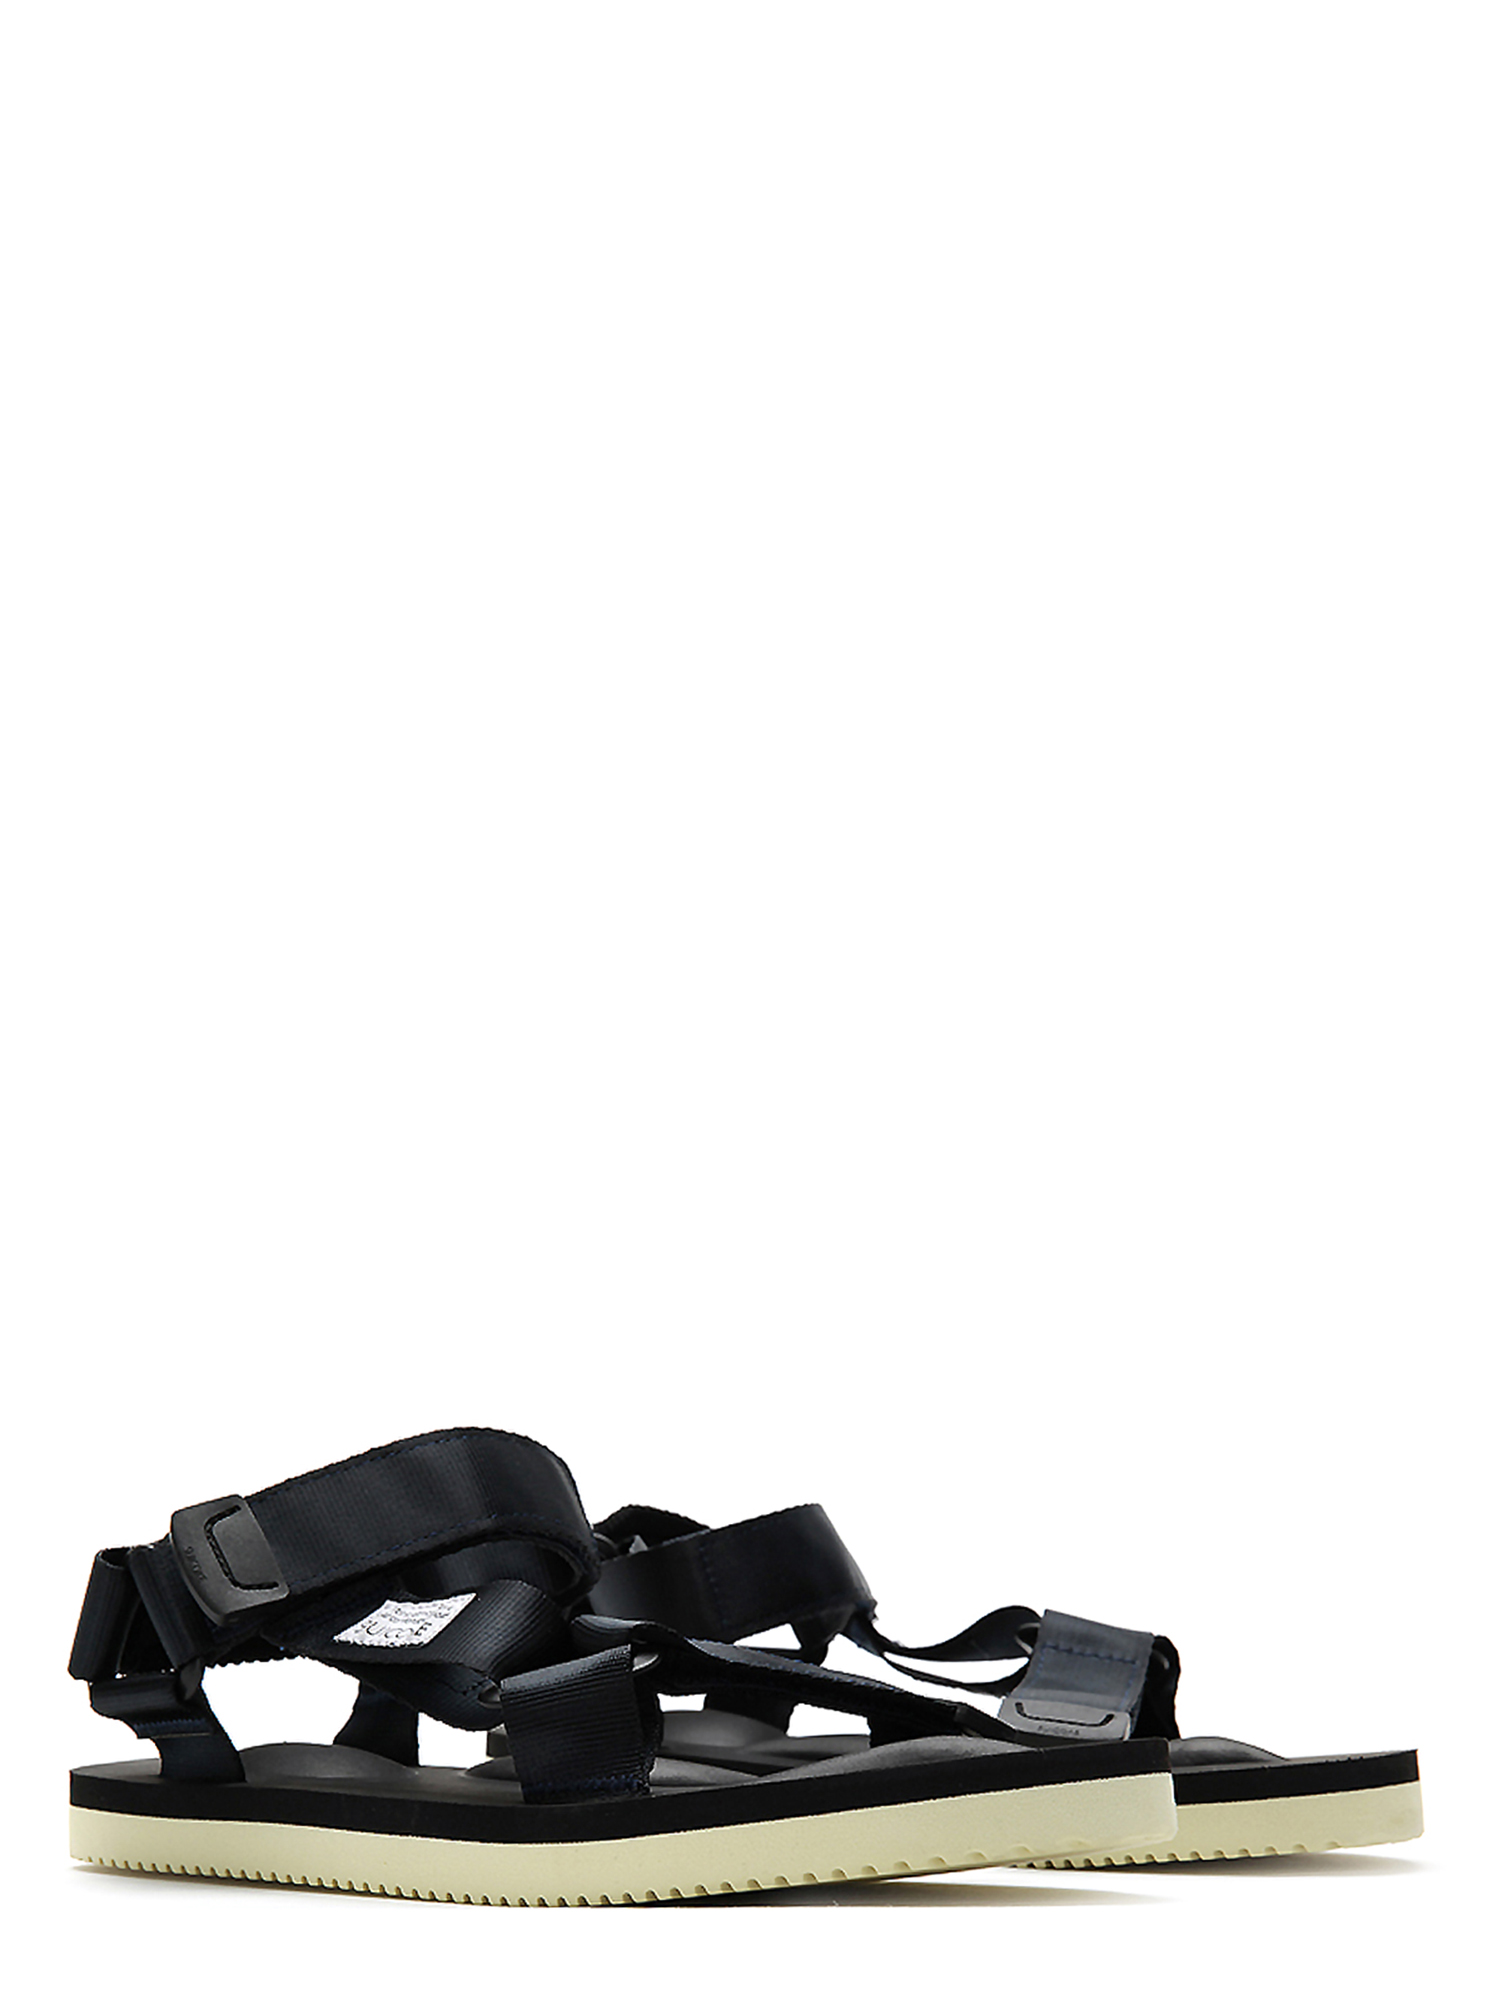 Suicoke Men's DEPA Sandals OG-022 DEPA